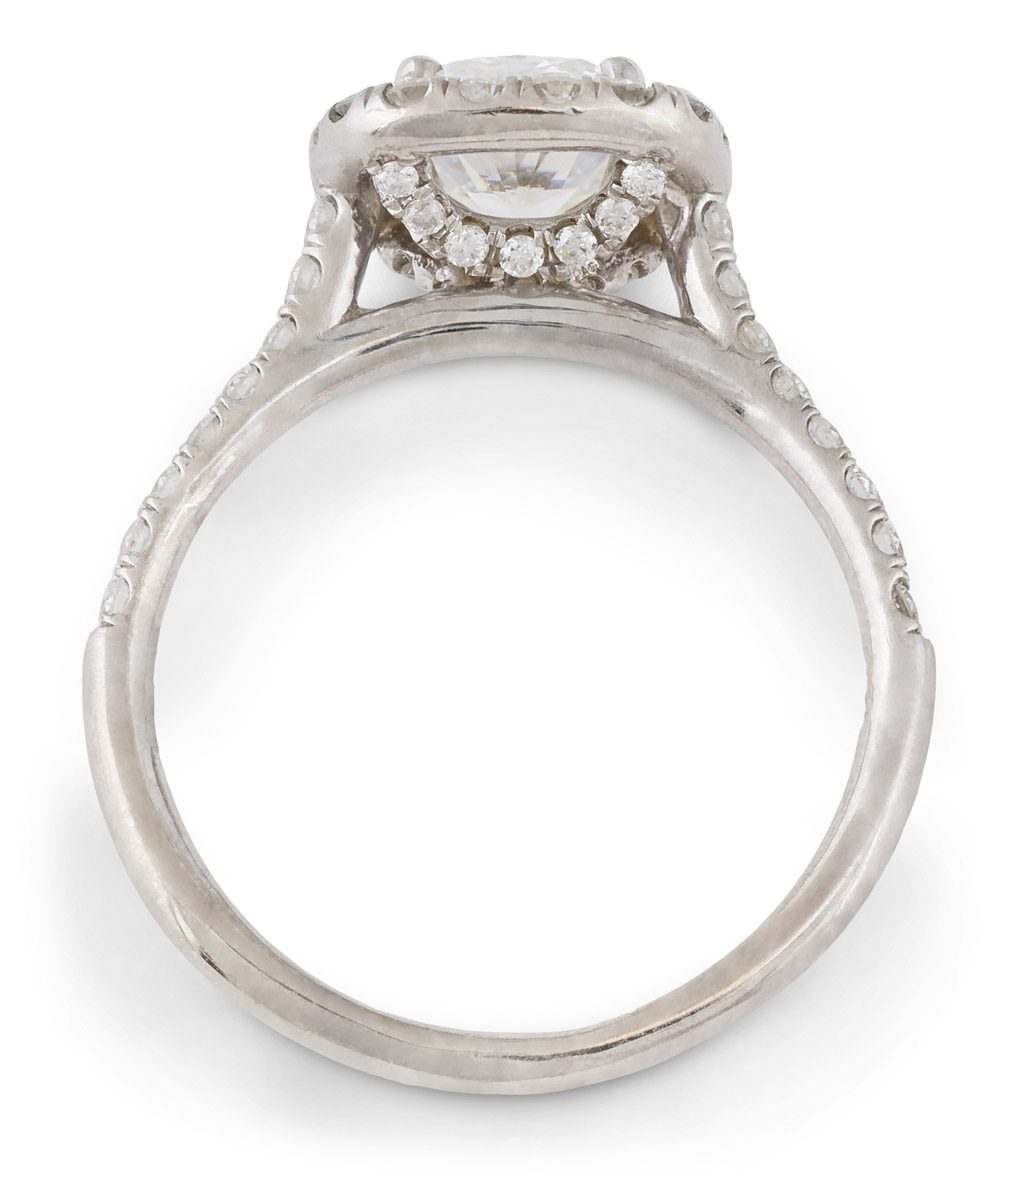 Cushion Diamond Halo Engagement Ring - Top